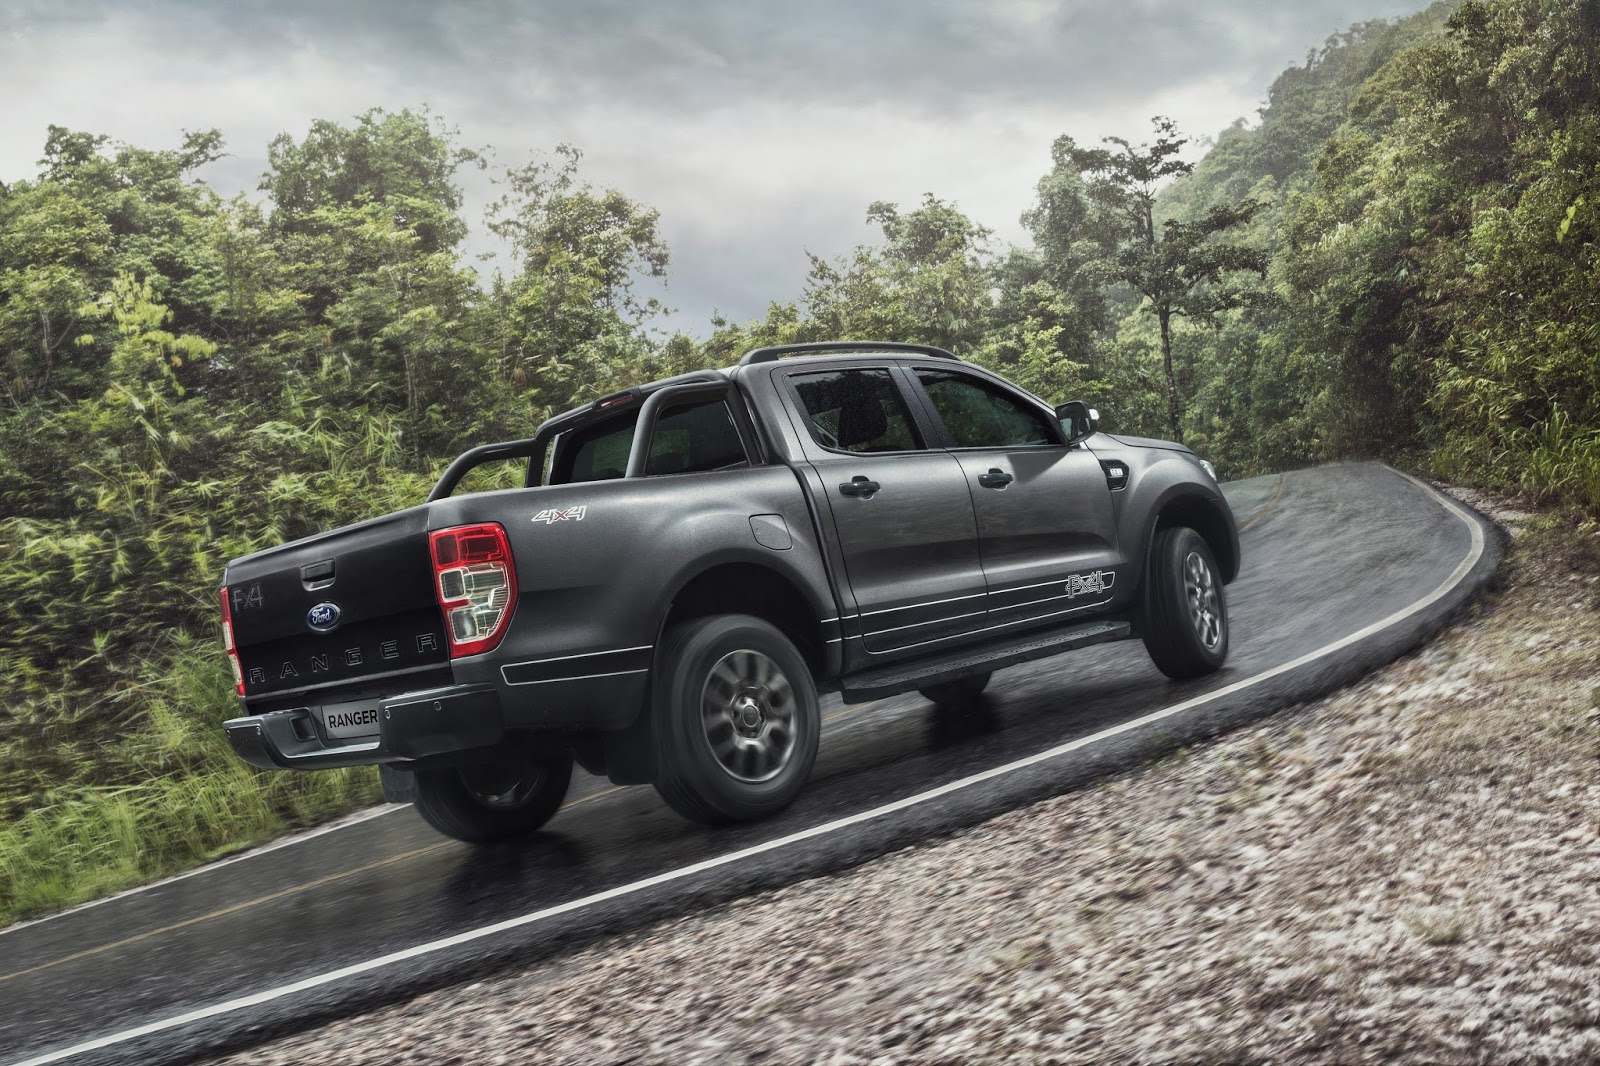 The ranger fx4 also features advanced technologies to enhance the driving experience ford s sync in car connectivity system makes it easier than ever for